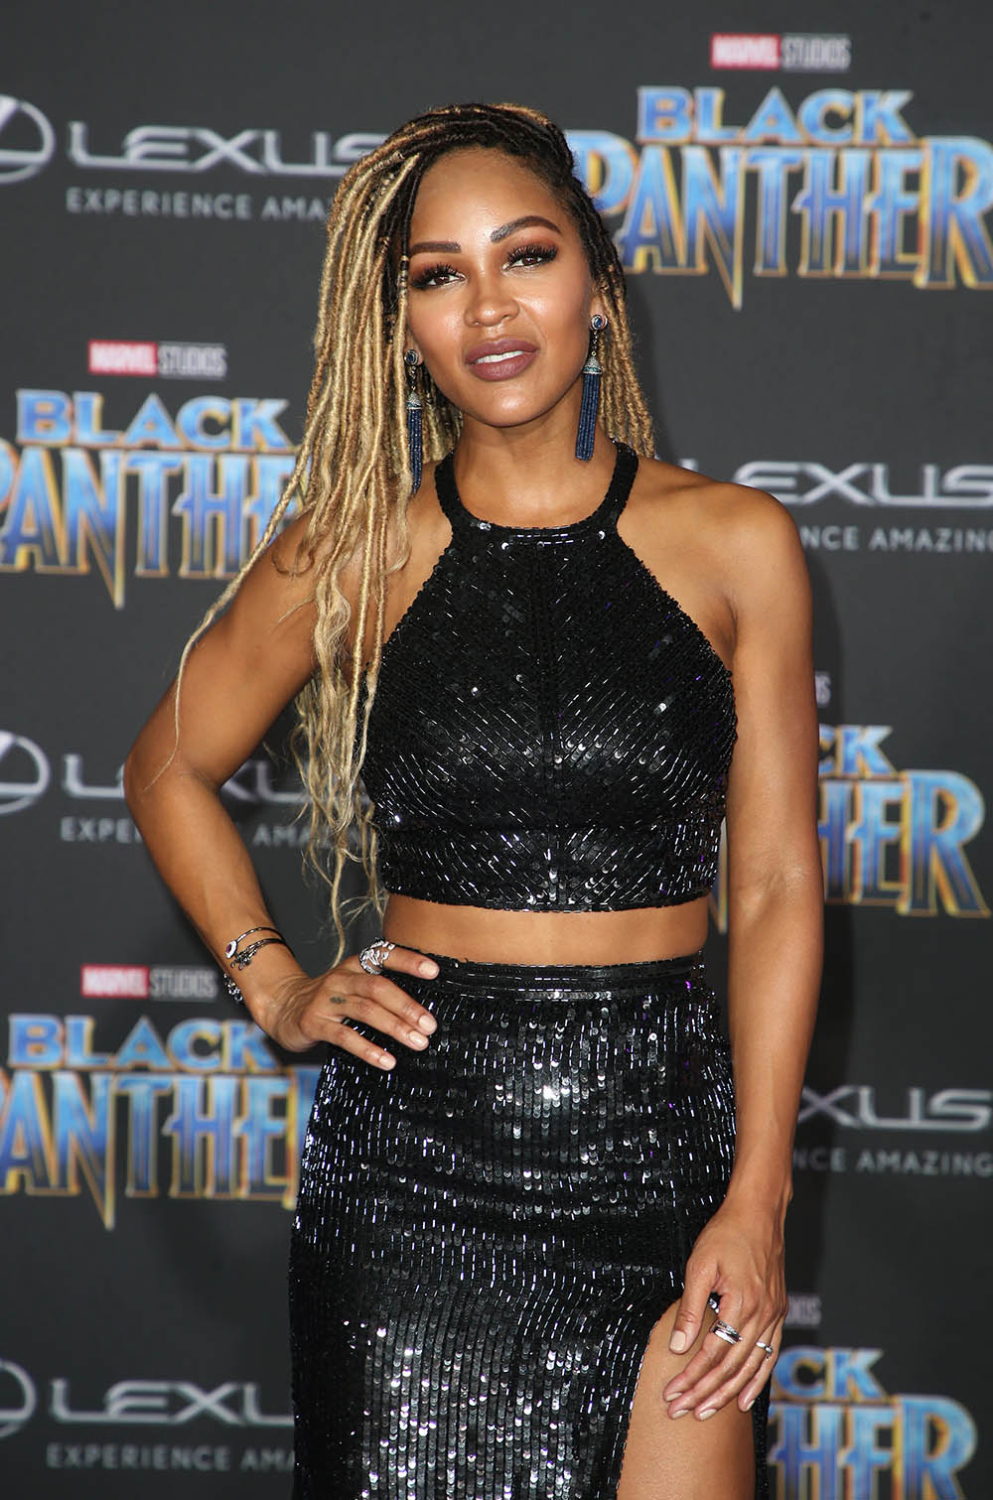 Meagan Good At Black Panther Film Premiere Sandra Rose